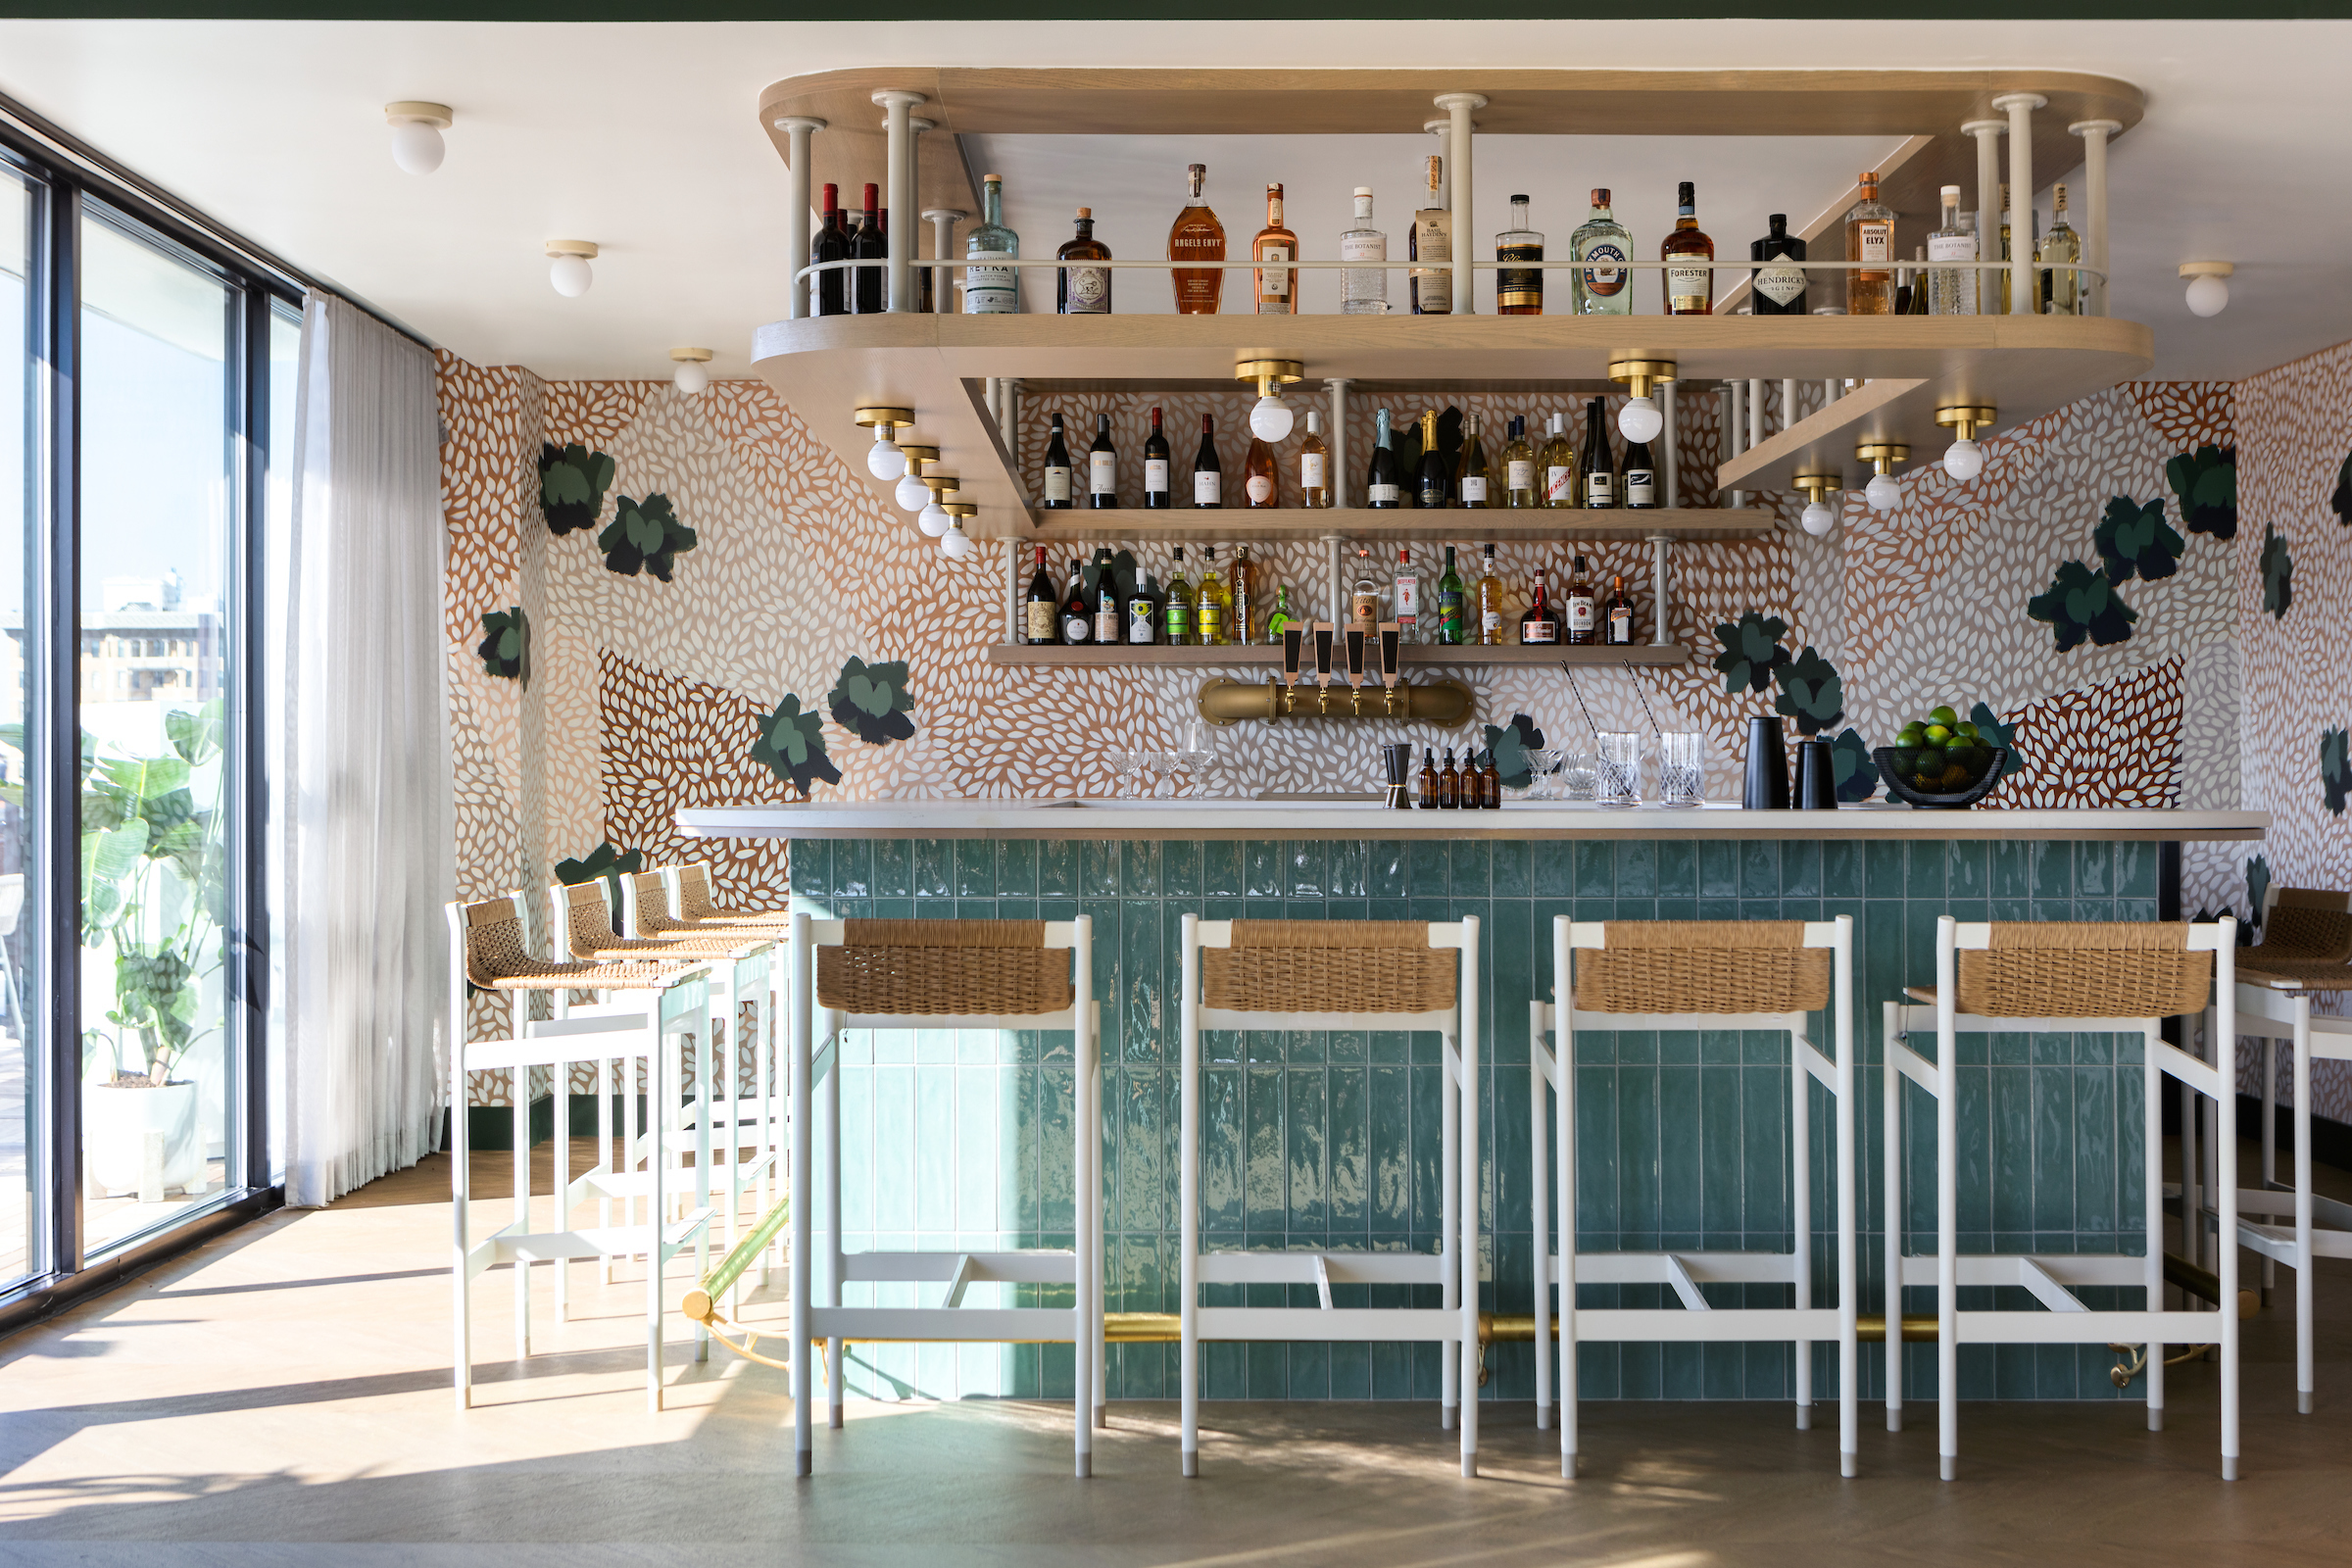 Lady Bird's bar is surrounded by teal accents and speckled wallpaper.